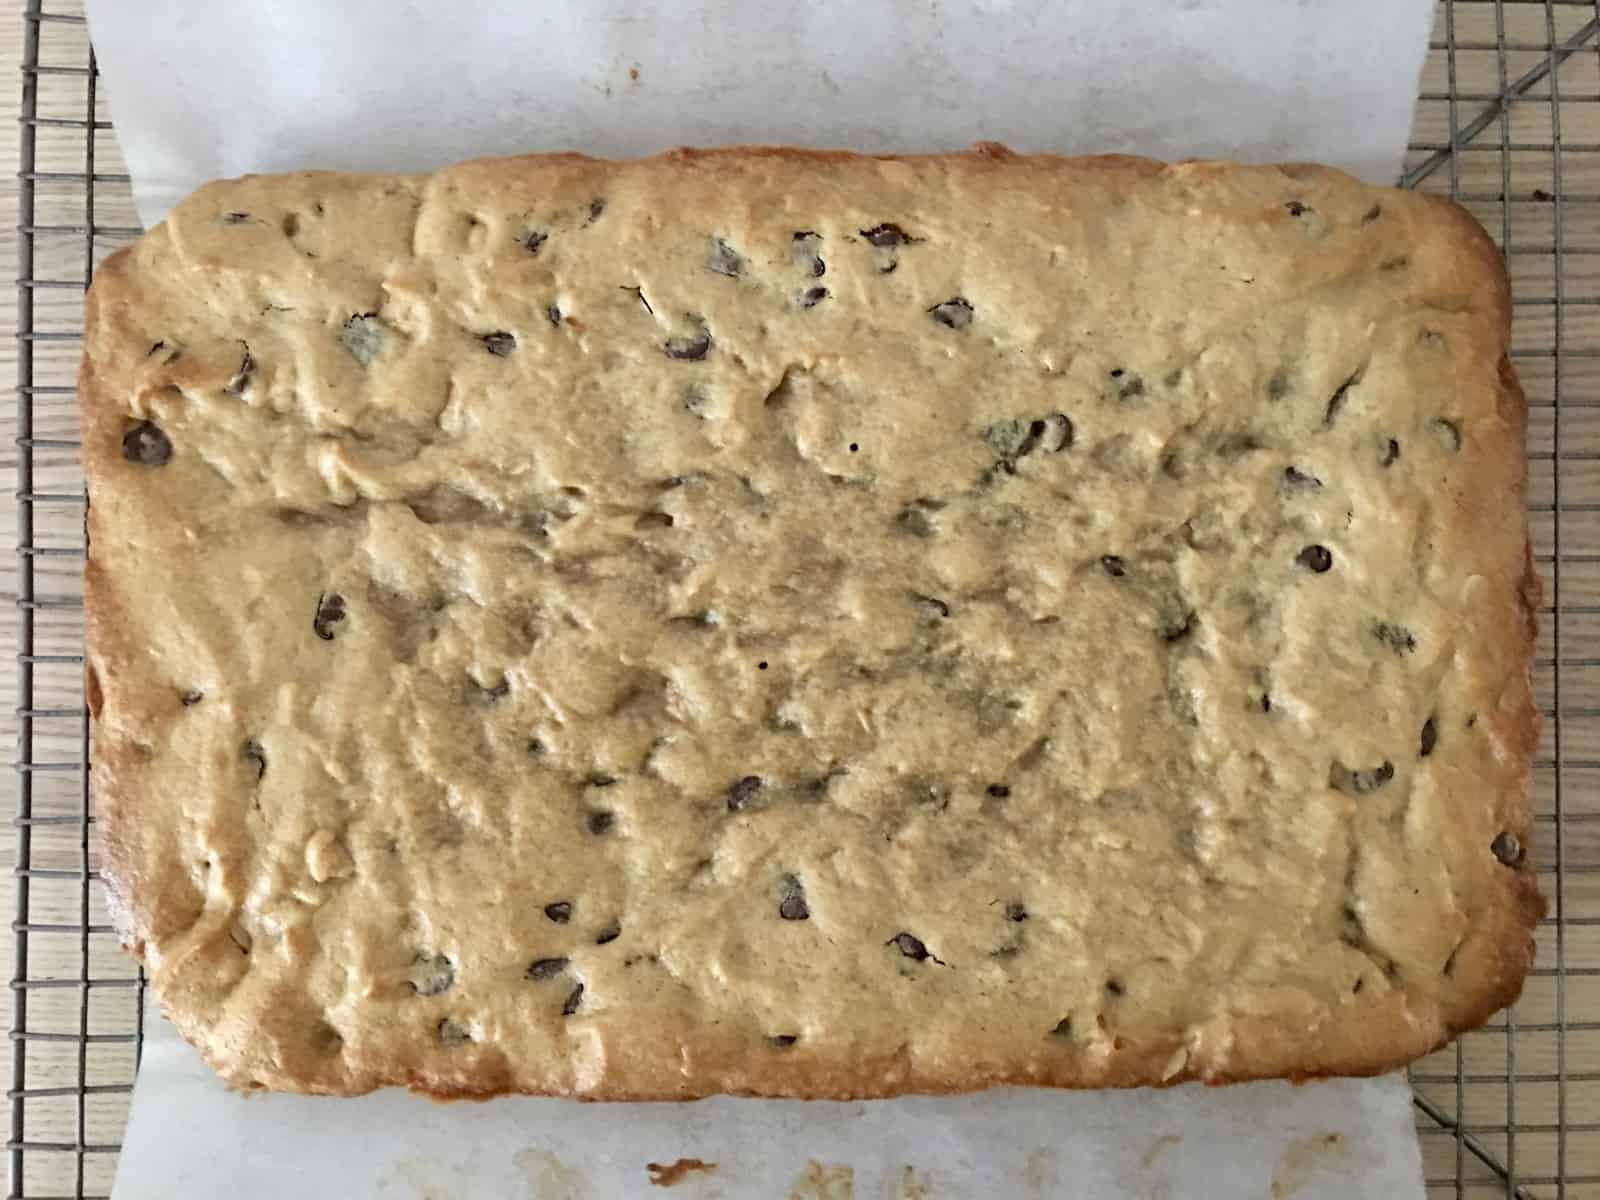 peanut butter banana blondies in a glass baking pan lined with parchment.